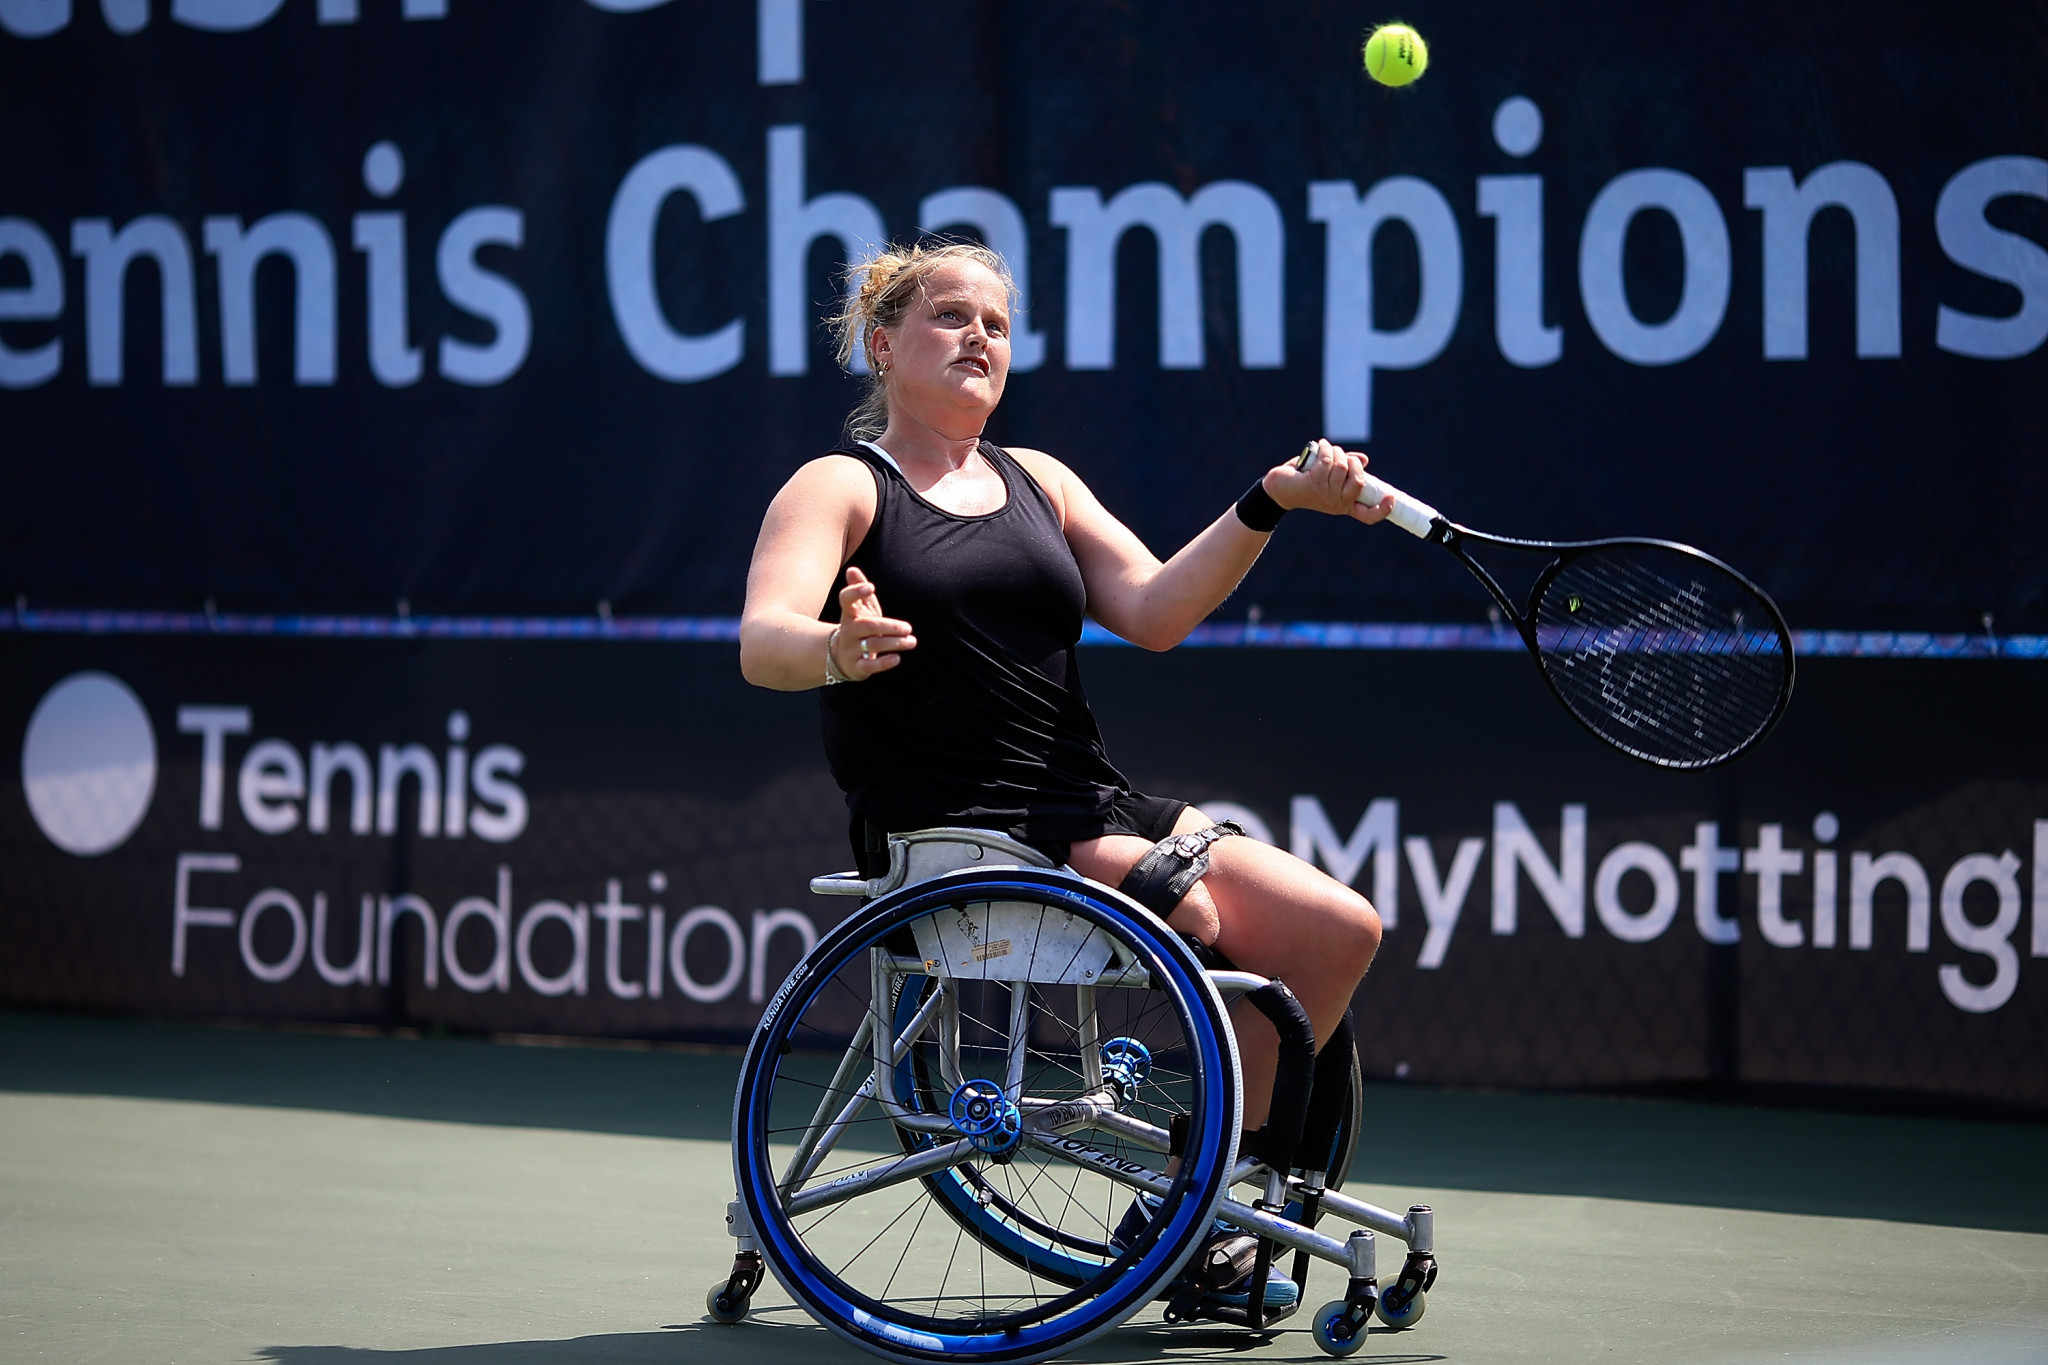 Second seed Van Koot secures quarter-final place on opening day of Bendigo Wheelchair Tennis Open